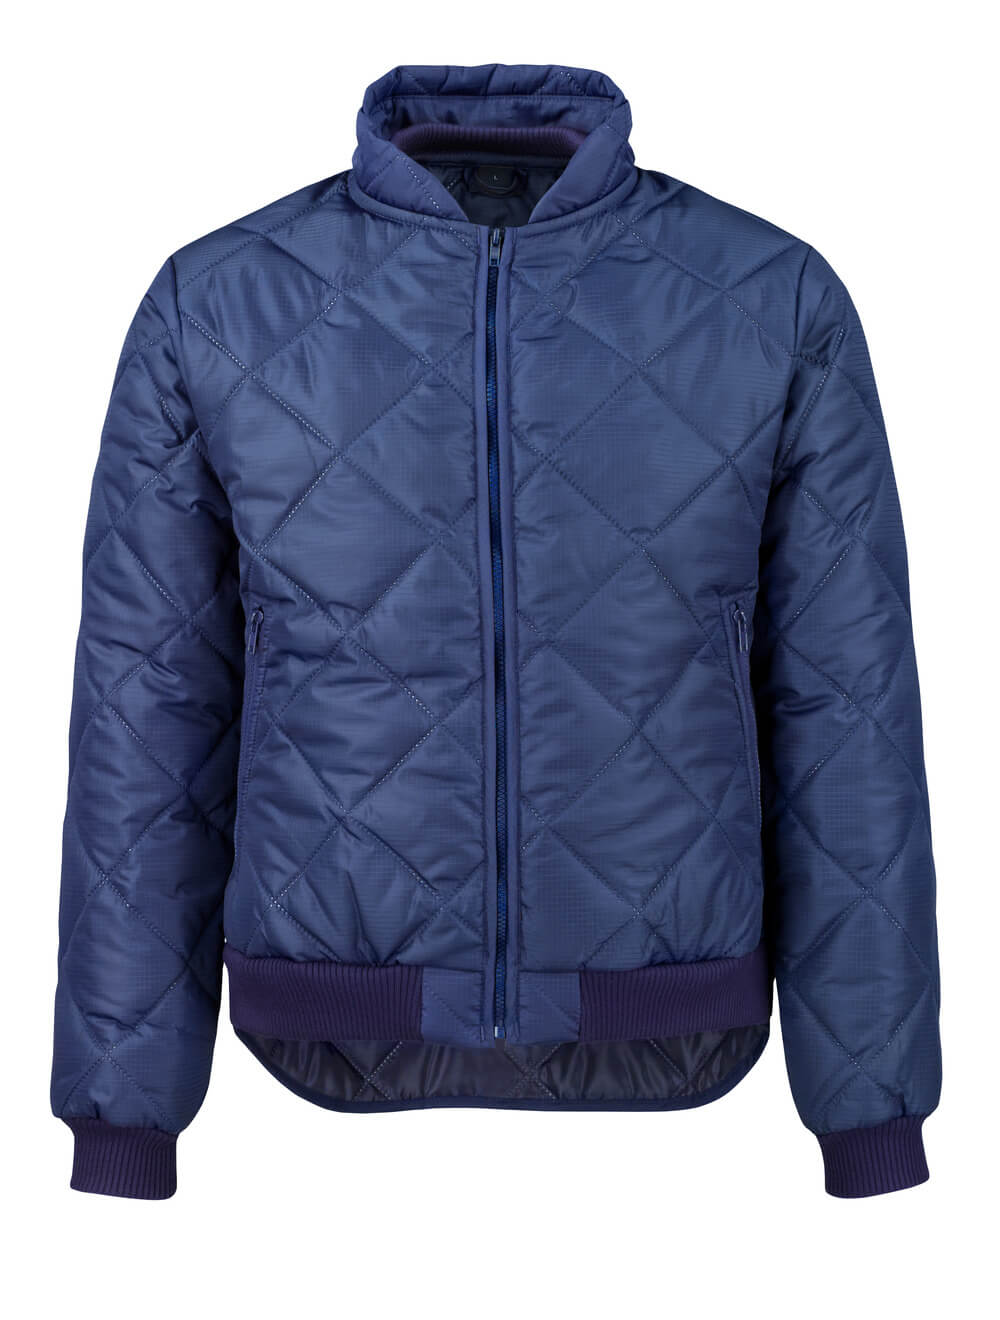 13515-905-01 Thermal Jacket - navy